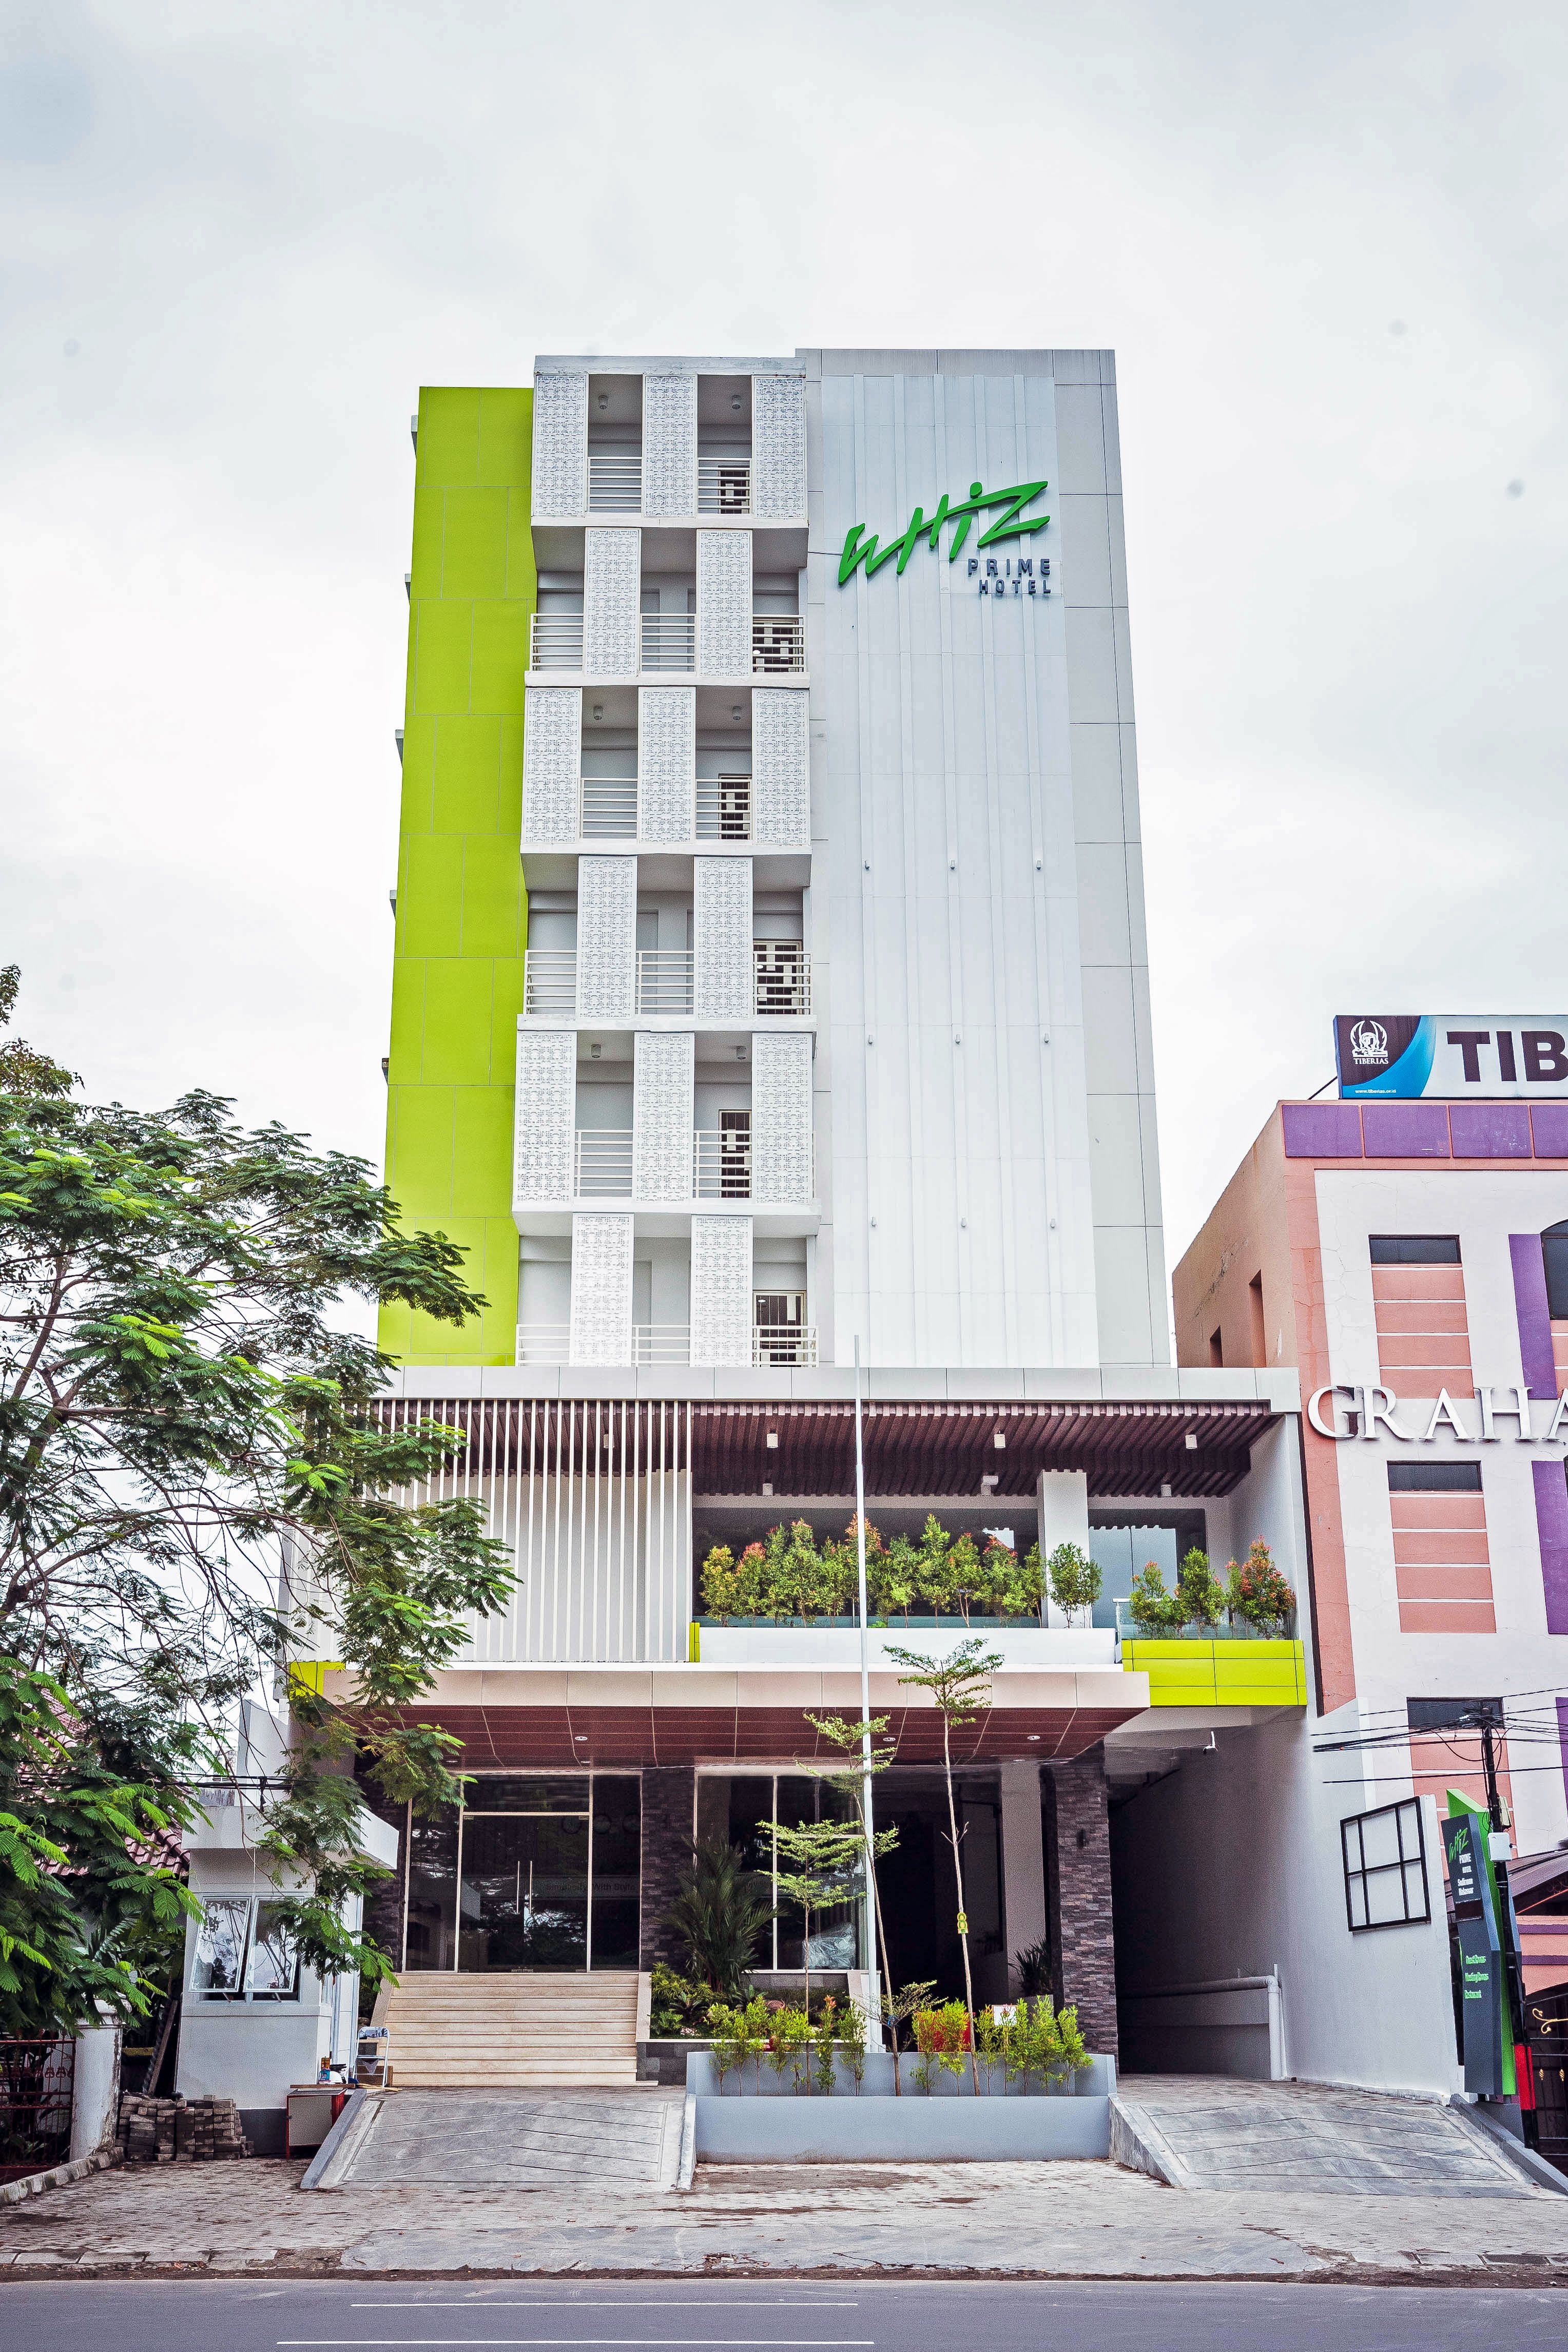 Hotels In Makassar Book Promo Hotel South Sulawesi Voucher Red Planet Bintang 2 Jakarta Whiz Prime Sudirman